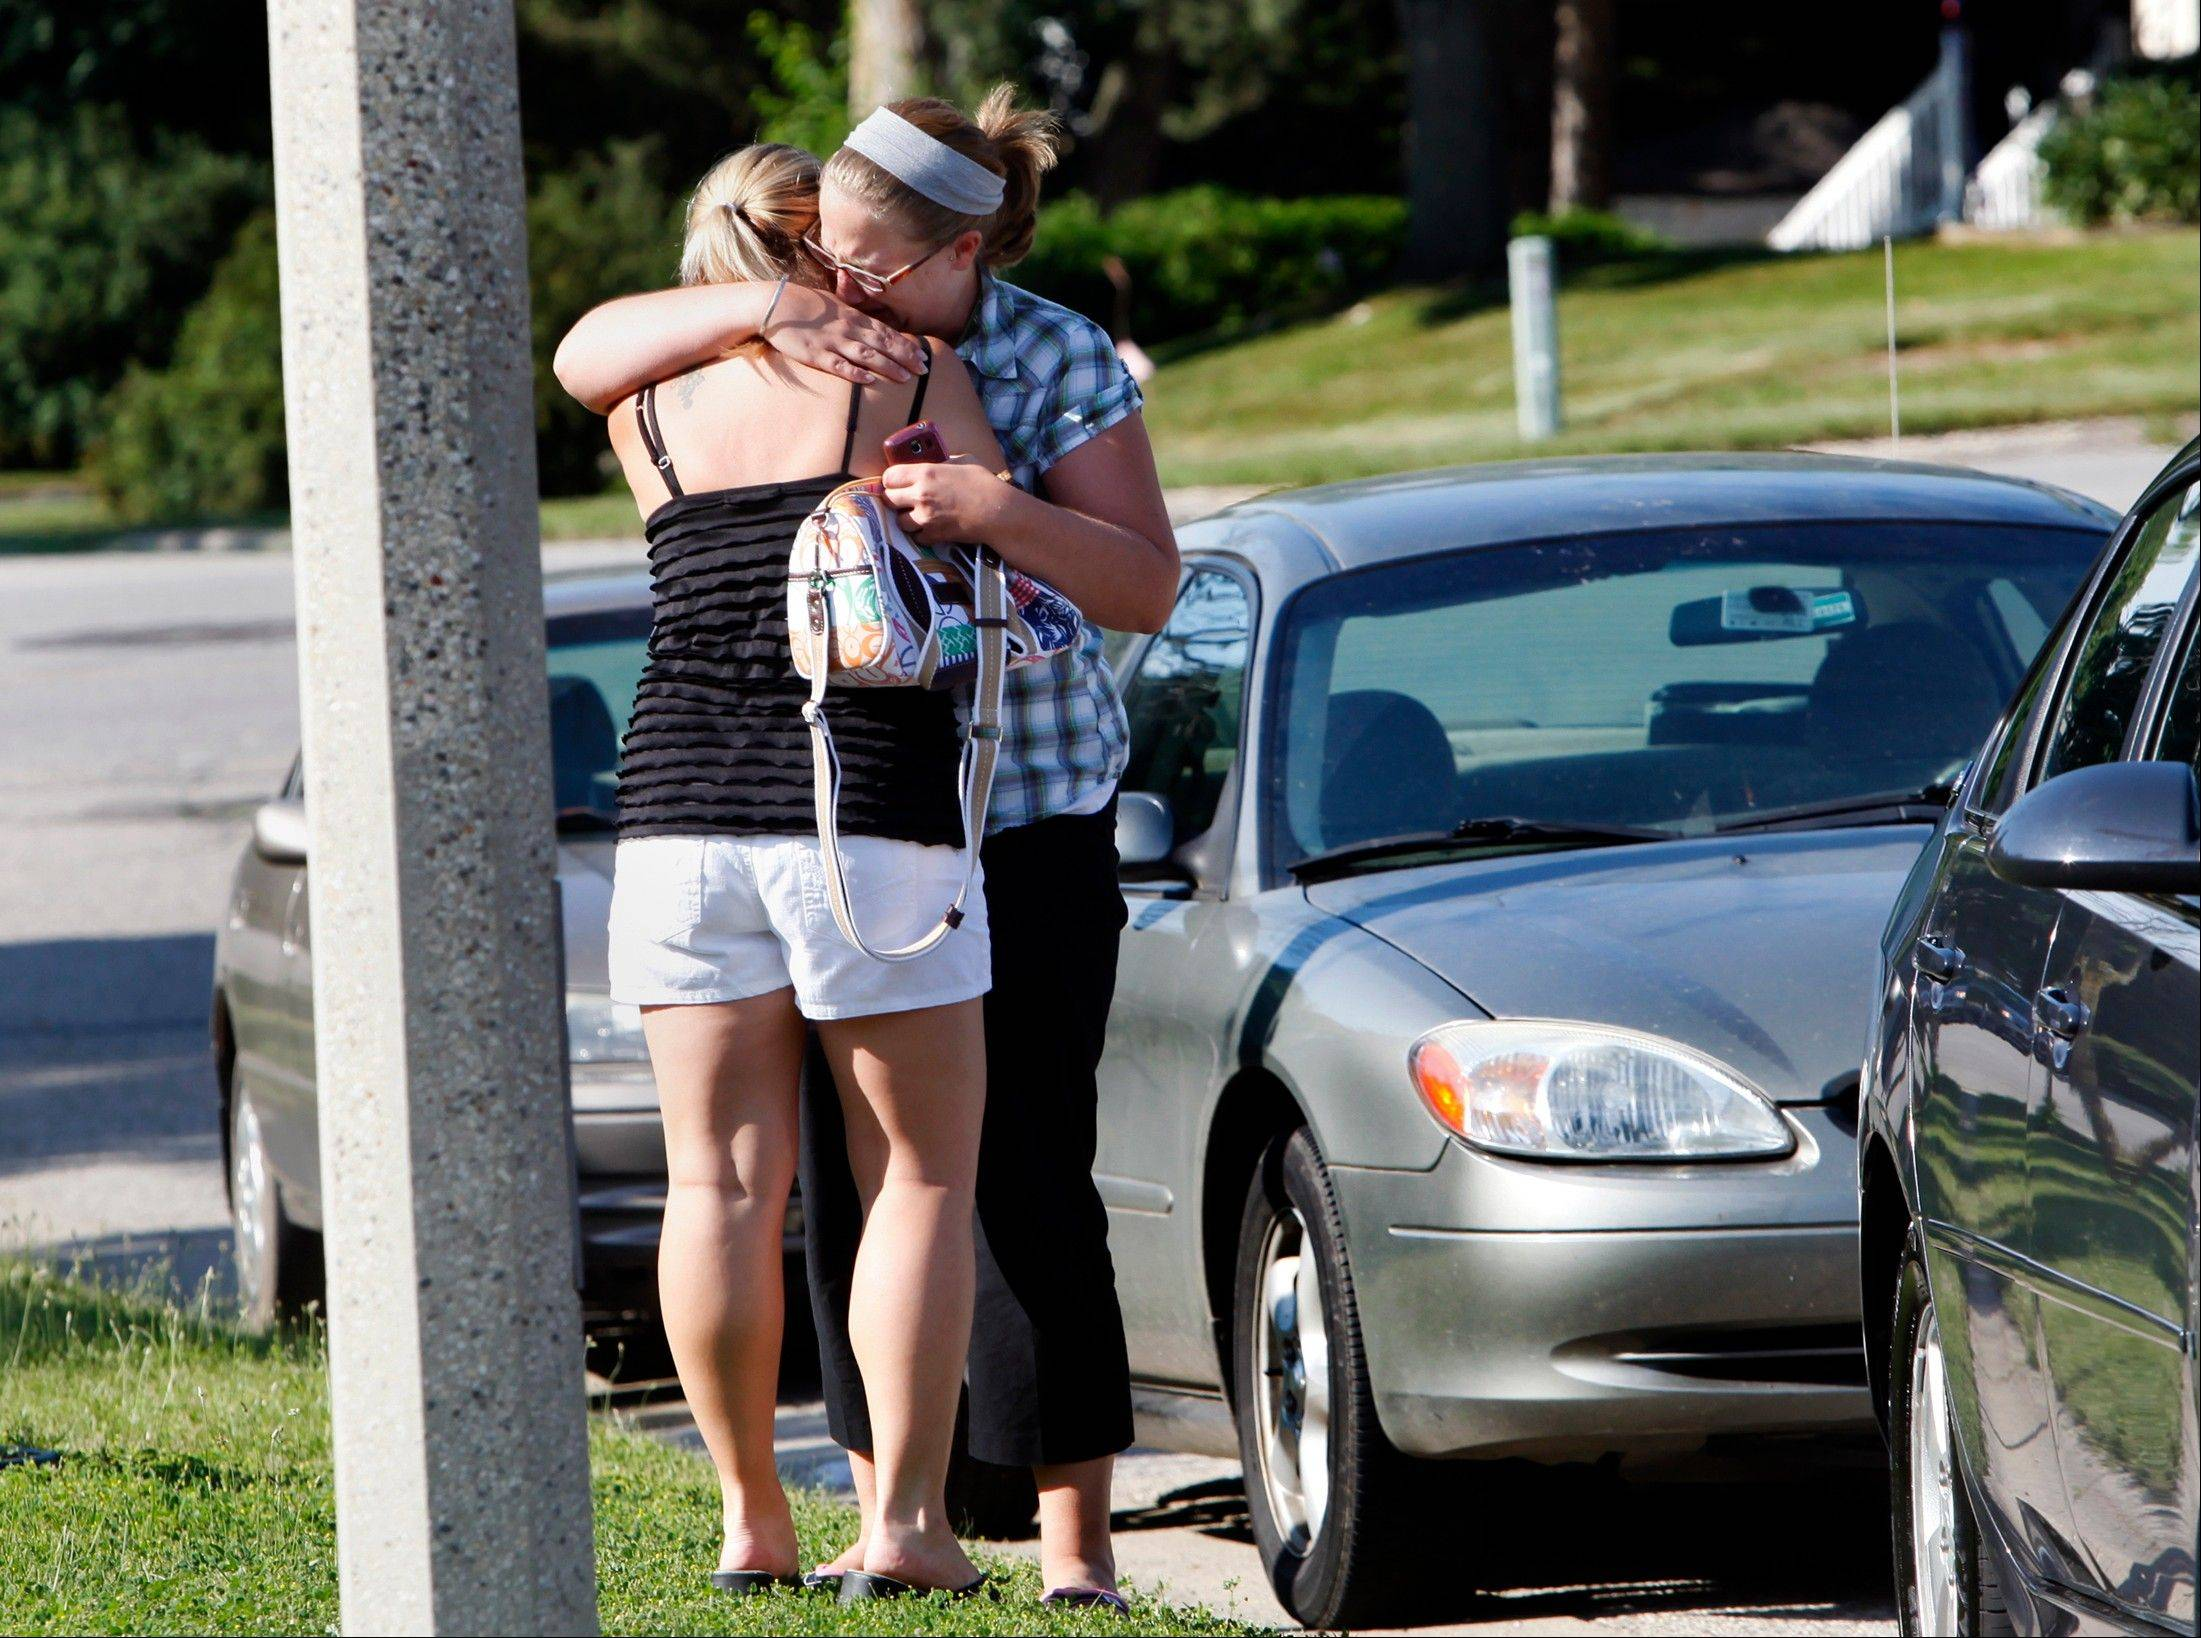 Tricia Jimenez, 27, of Grand Rapids, left, and a close friend grieve after finding out their close friends' parents were murdered in their home on Brynell Avenue in Grand Rapids, Mich. Thursday, July 7, 2011. Four victims were found in the basement, and another three were found another home across town.